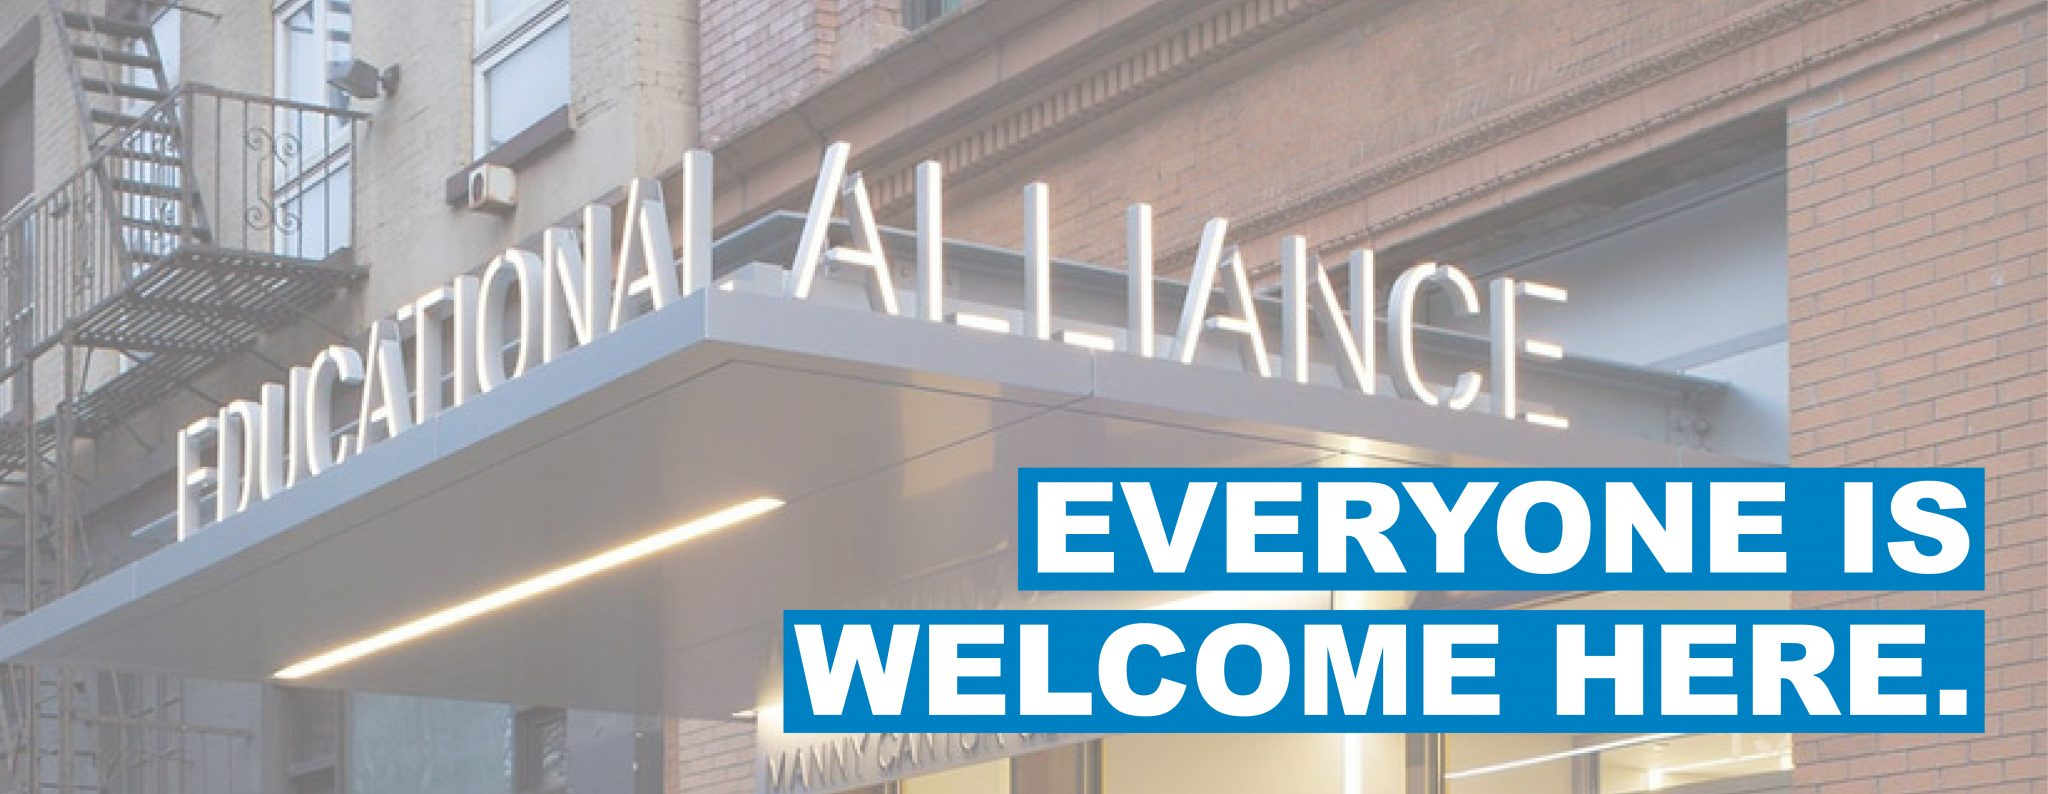 Educational Alliance | Everyone is welcome here